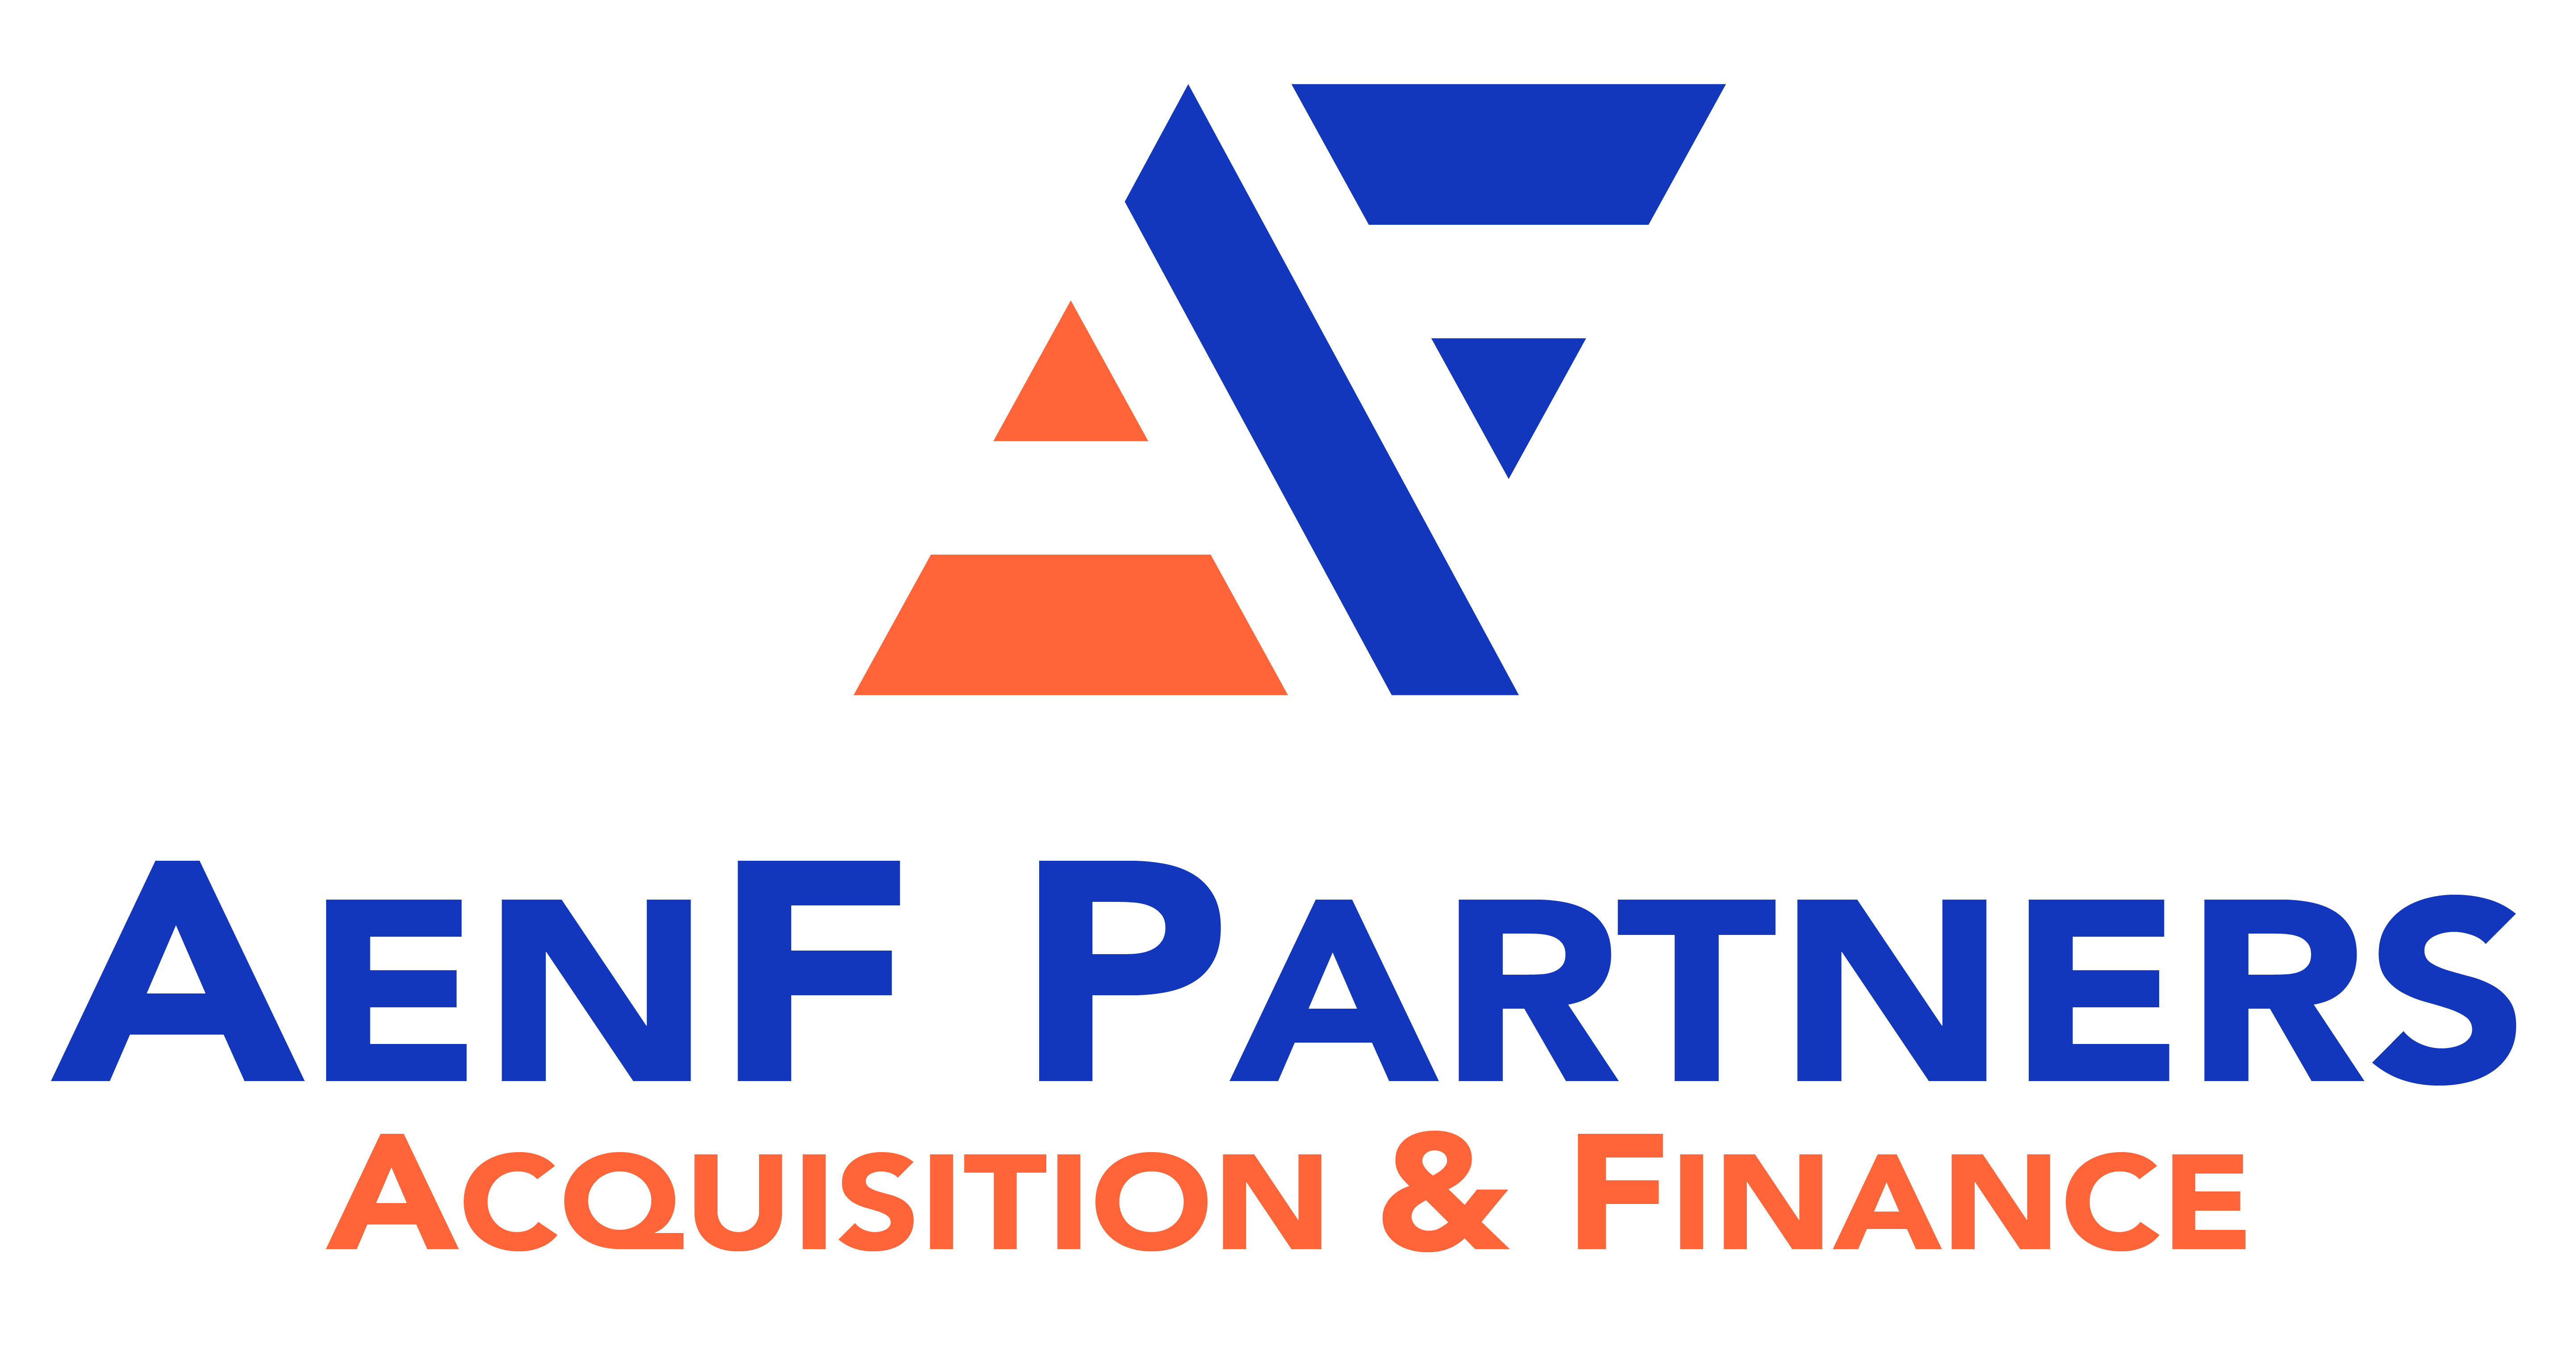 Stage AenF Partners